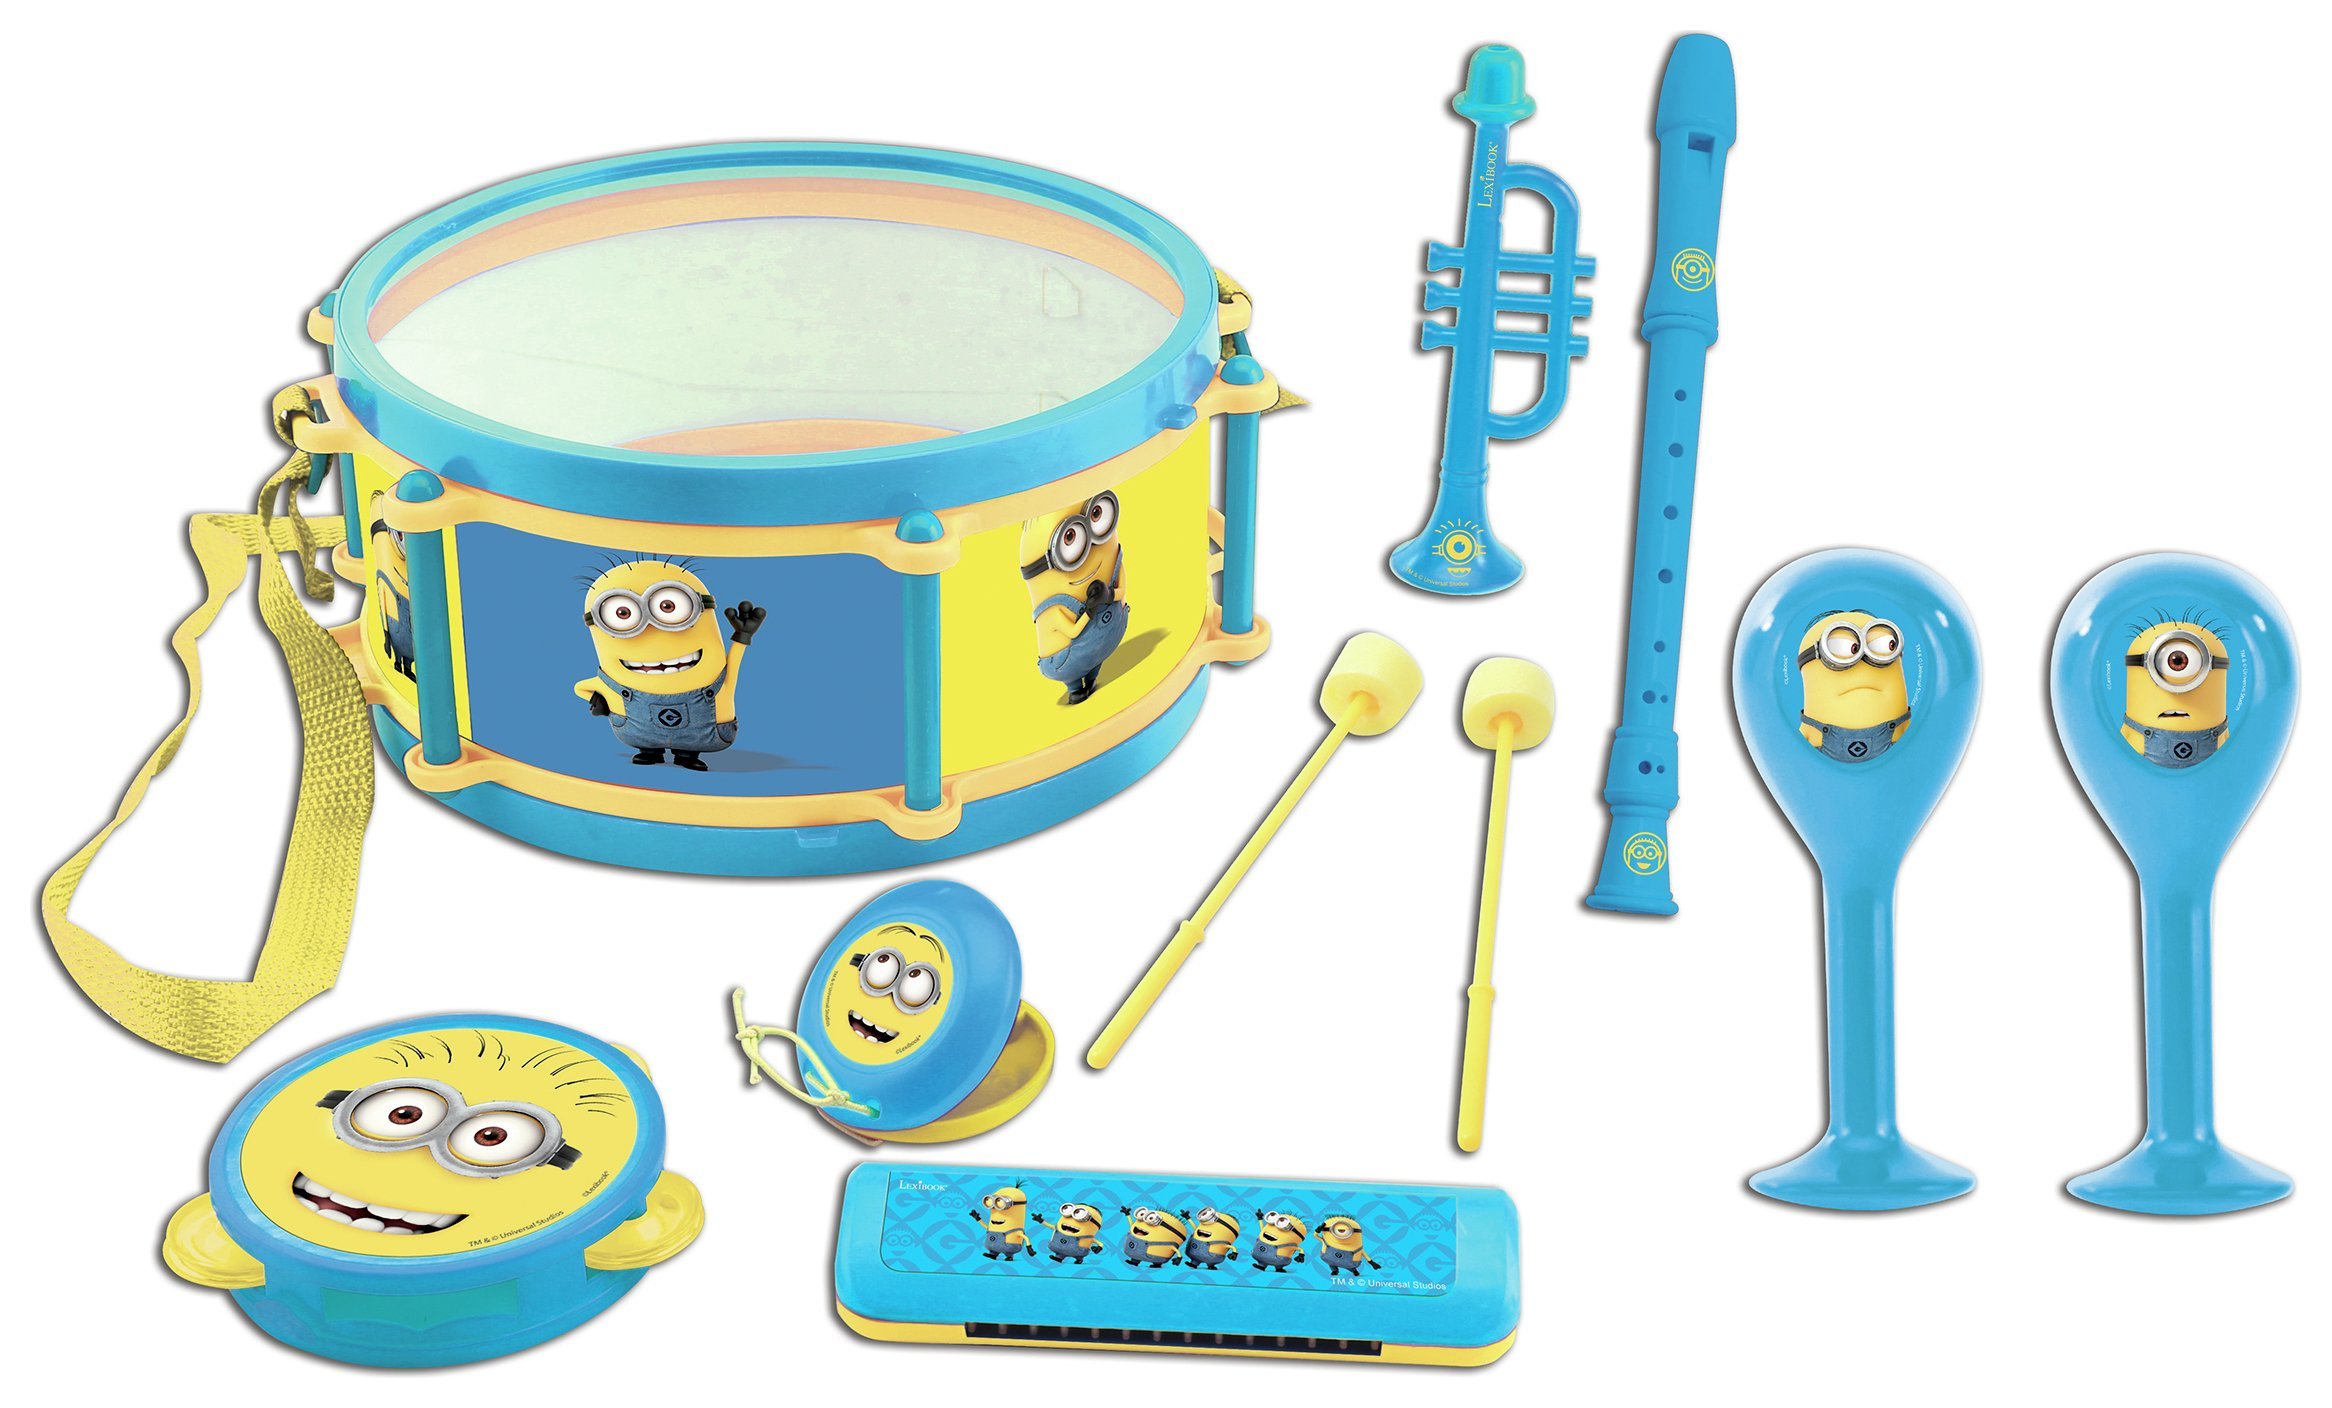 Image of Despicable Me Music Set.